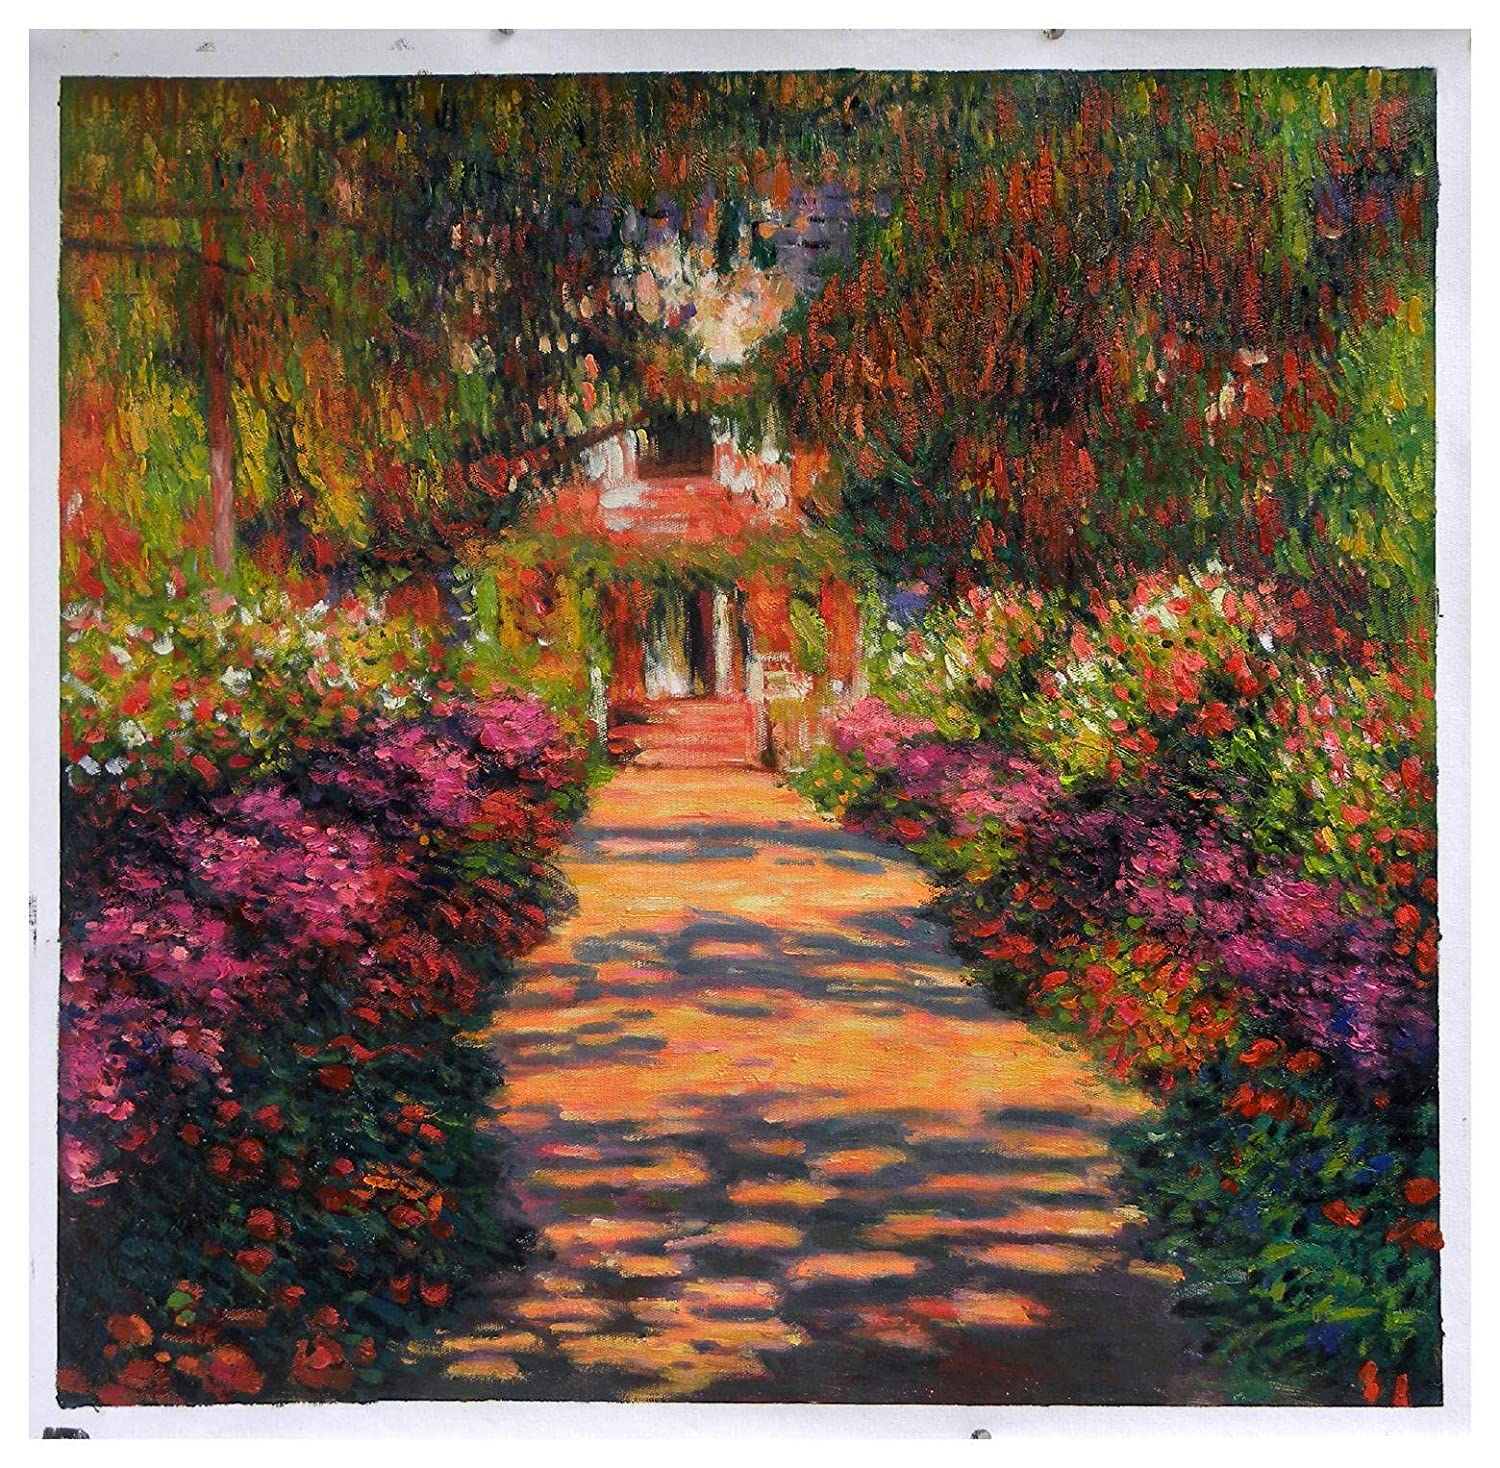 Pathway in Monet's Garden at Giverny - Claude Monet hand-painted oil painting reproduction,Home Garden Flower Landscape,living room wall art